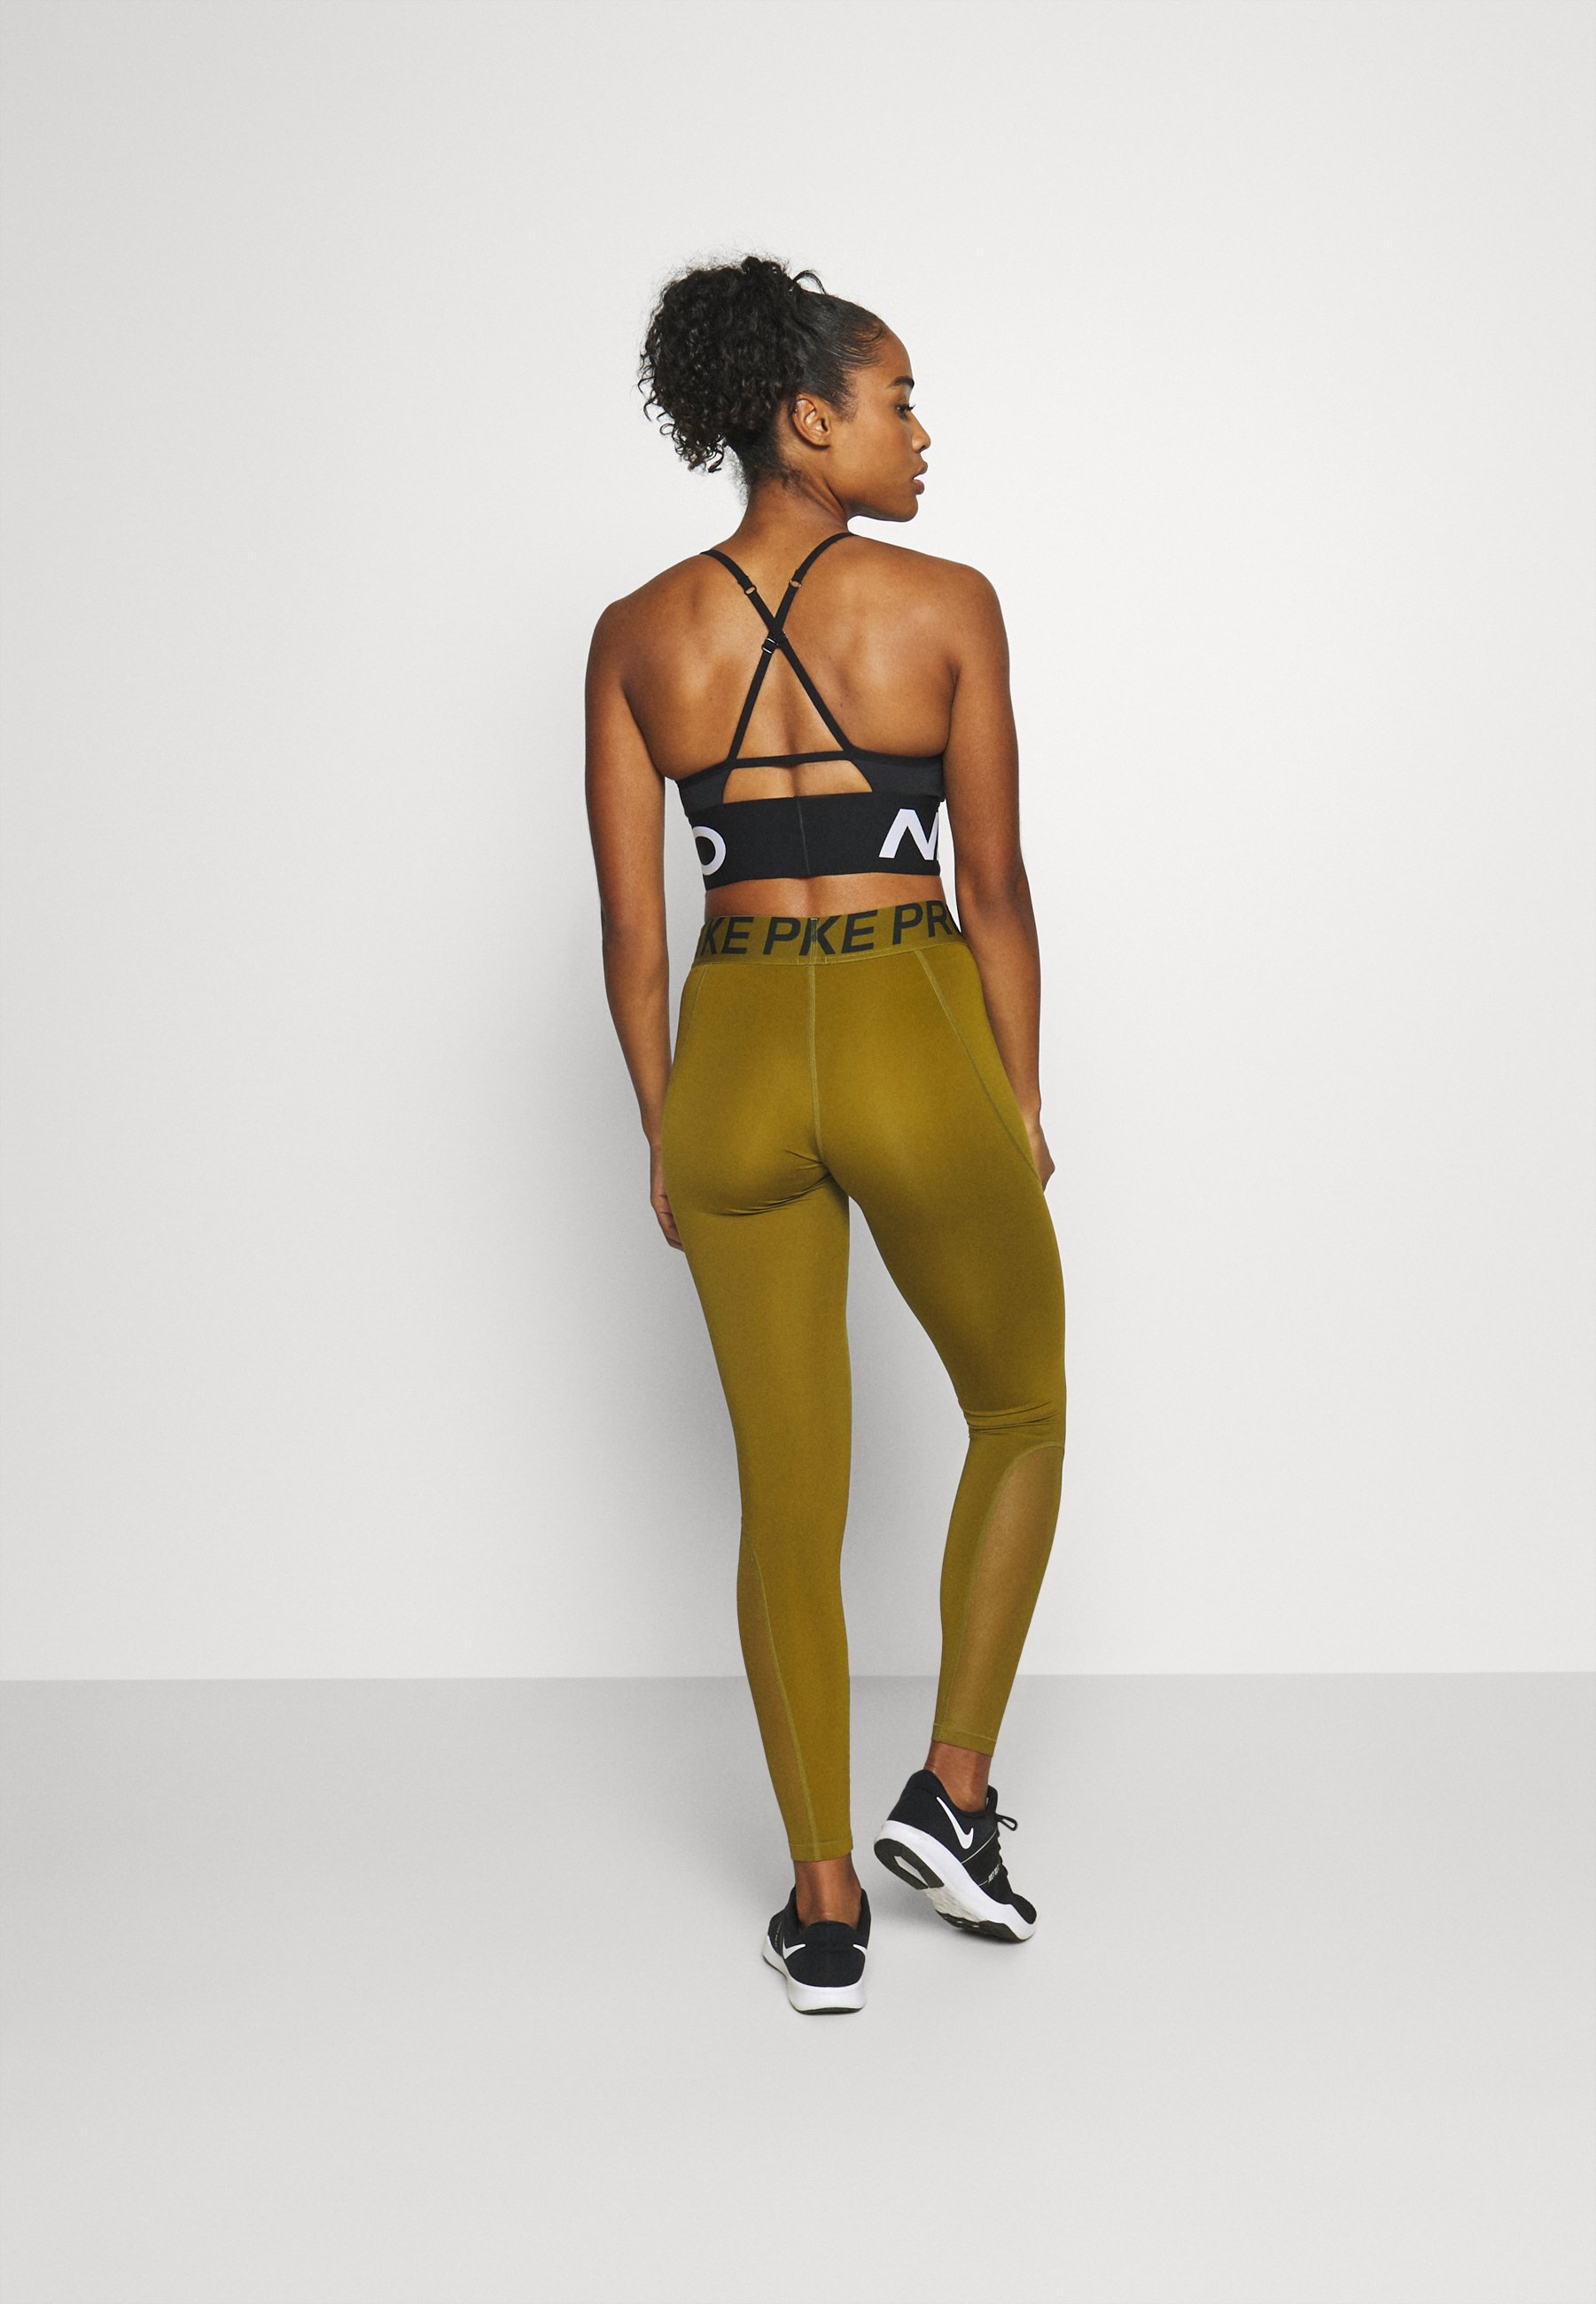 Nike Performance Leggings - olive flak/olive flak/black 1TsYl